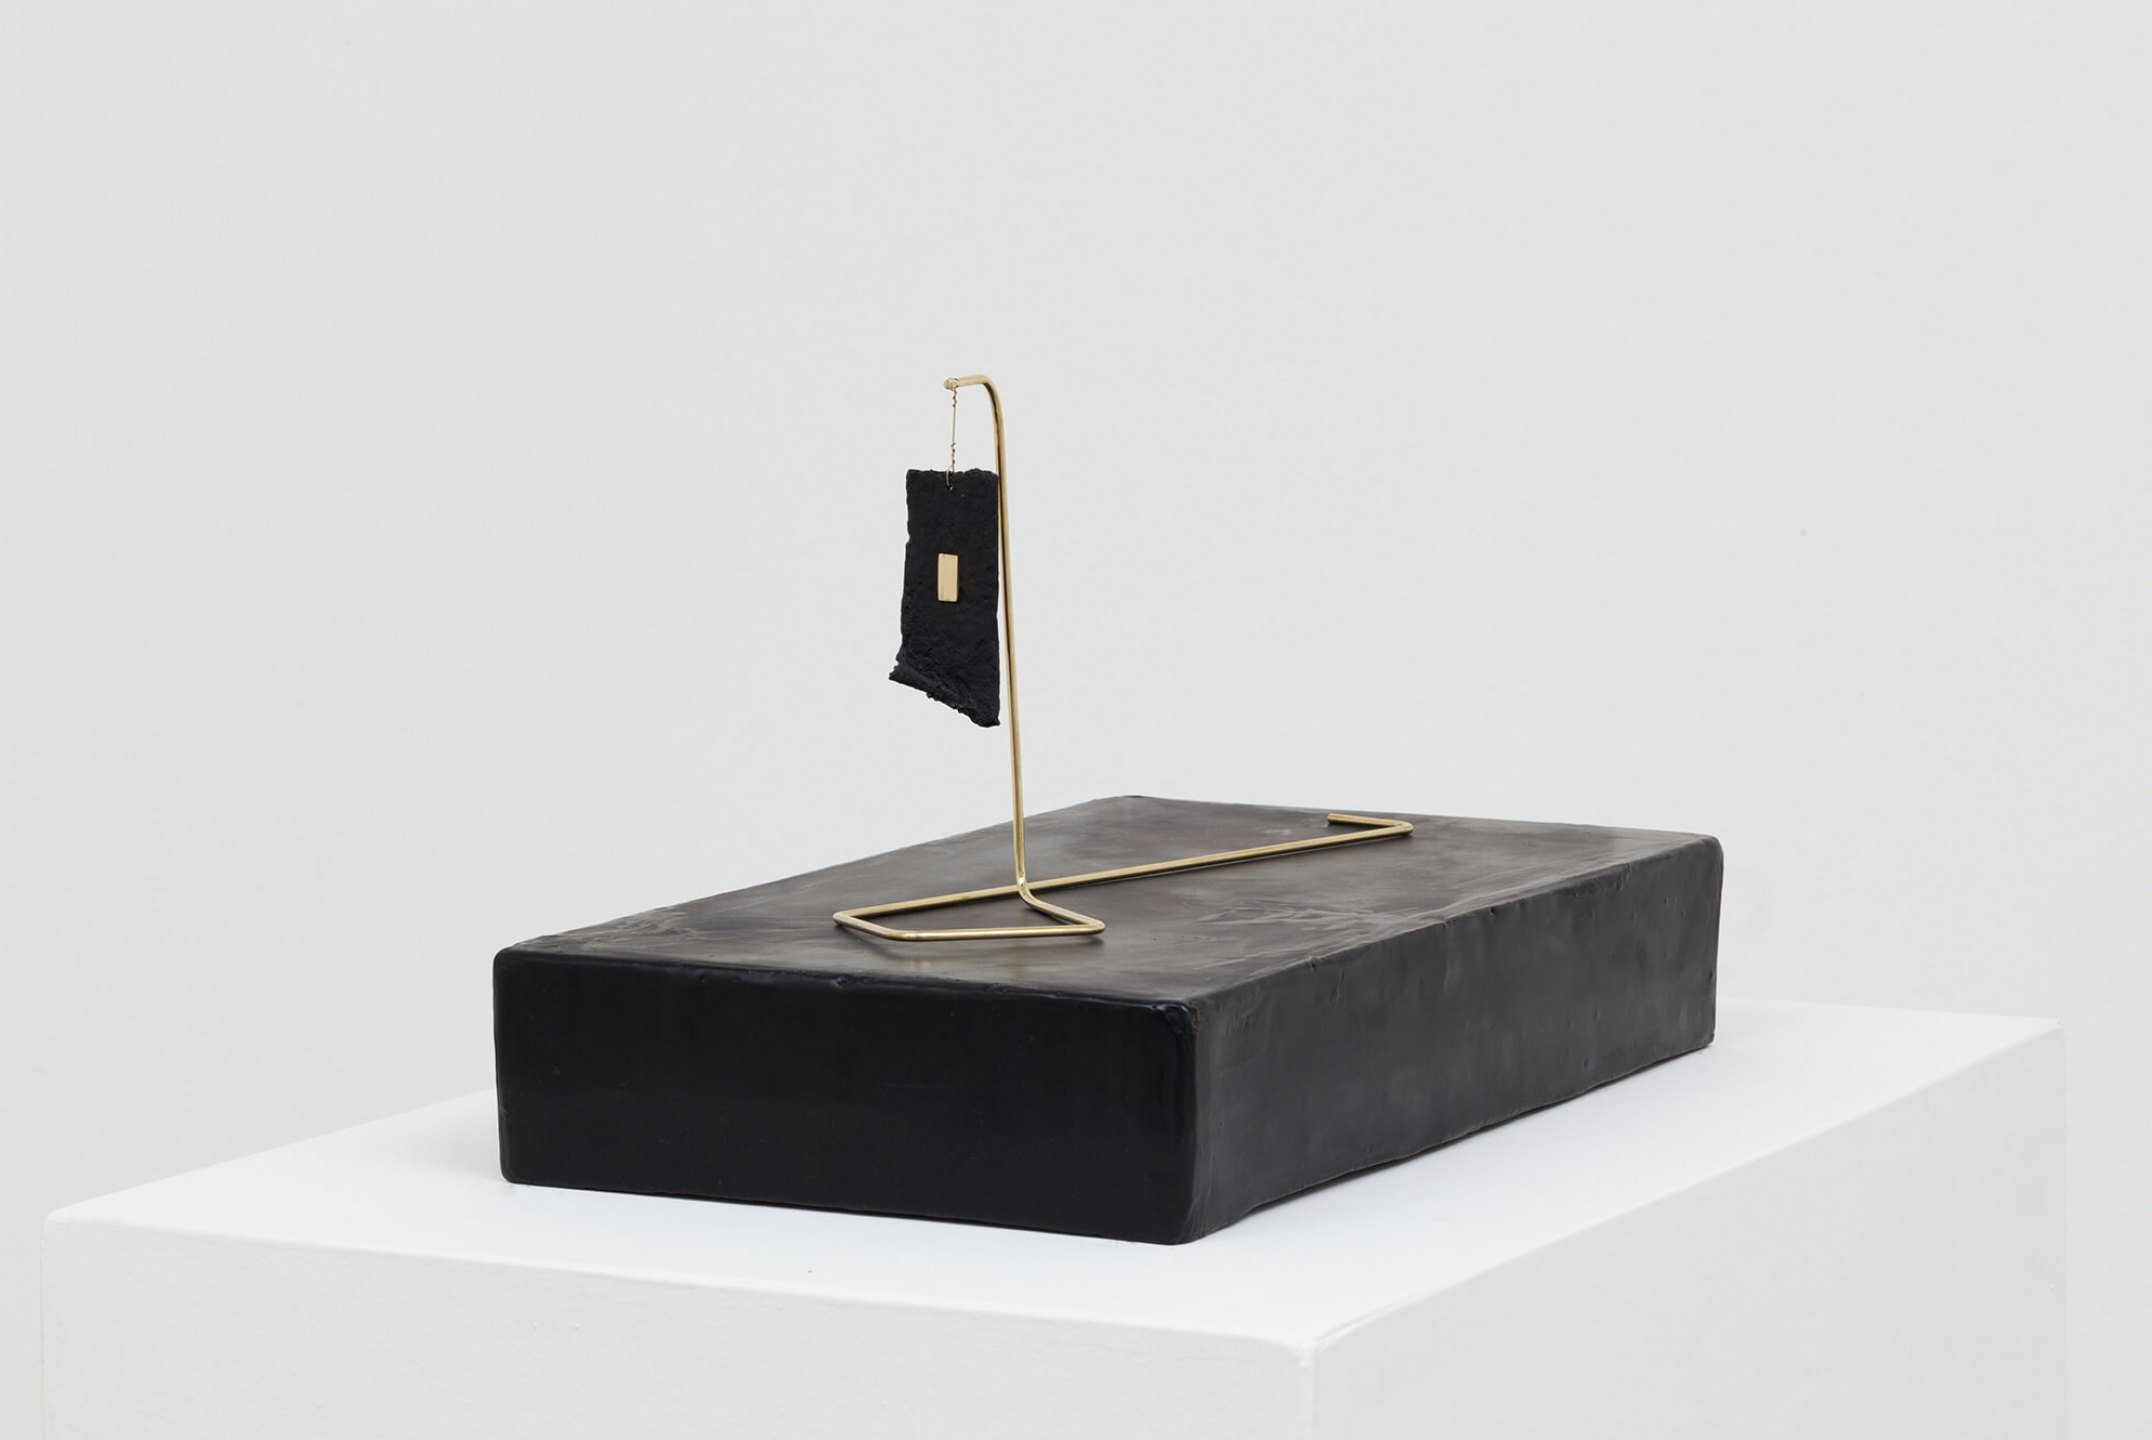 Paloma Bosquê, <em>Piece #1</em>, 2016, dyed bee wax shaped in block form, brass rods and cotton paper waxed, 6,53 × 40,5 × 22 cm | 17 × 32 × 8,5 cm  - Mendes Wood DM